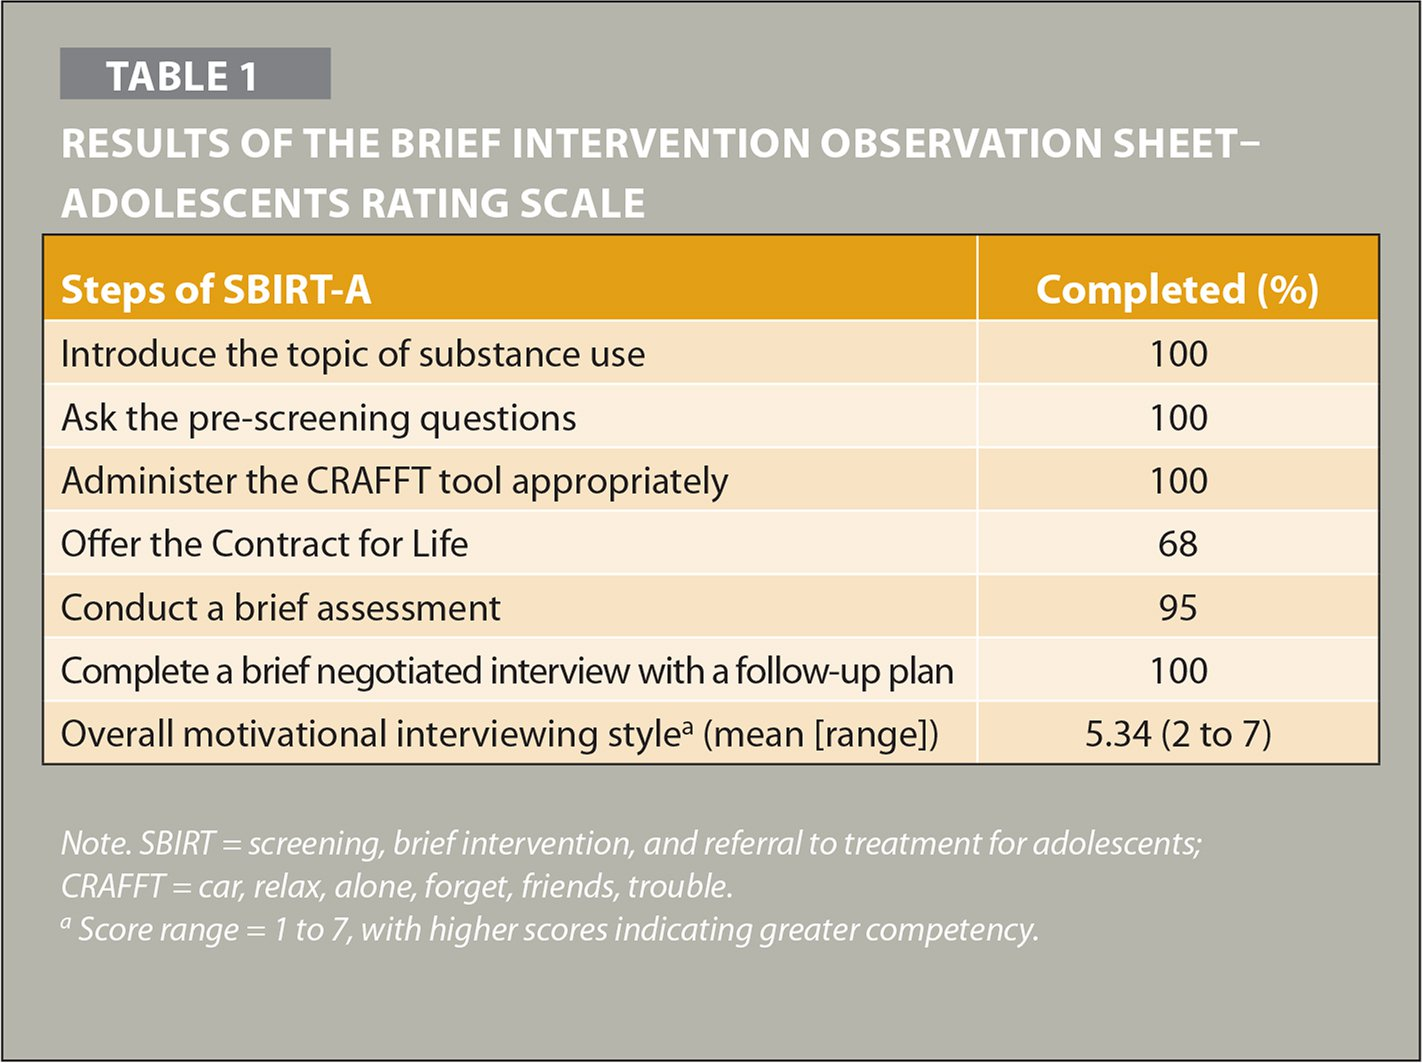 Results of the Brief Intervention Observation Sheet–Adolescents Rating Scale